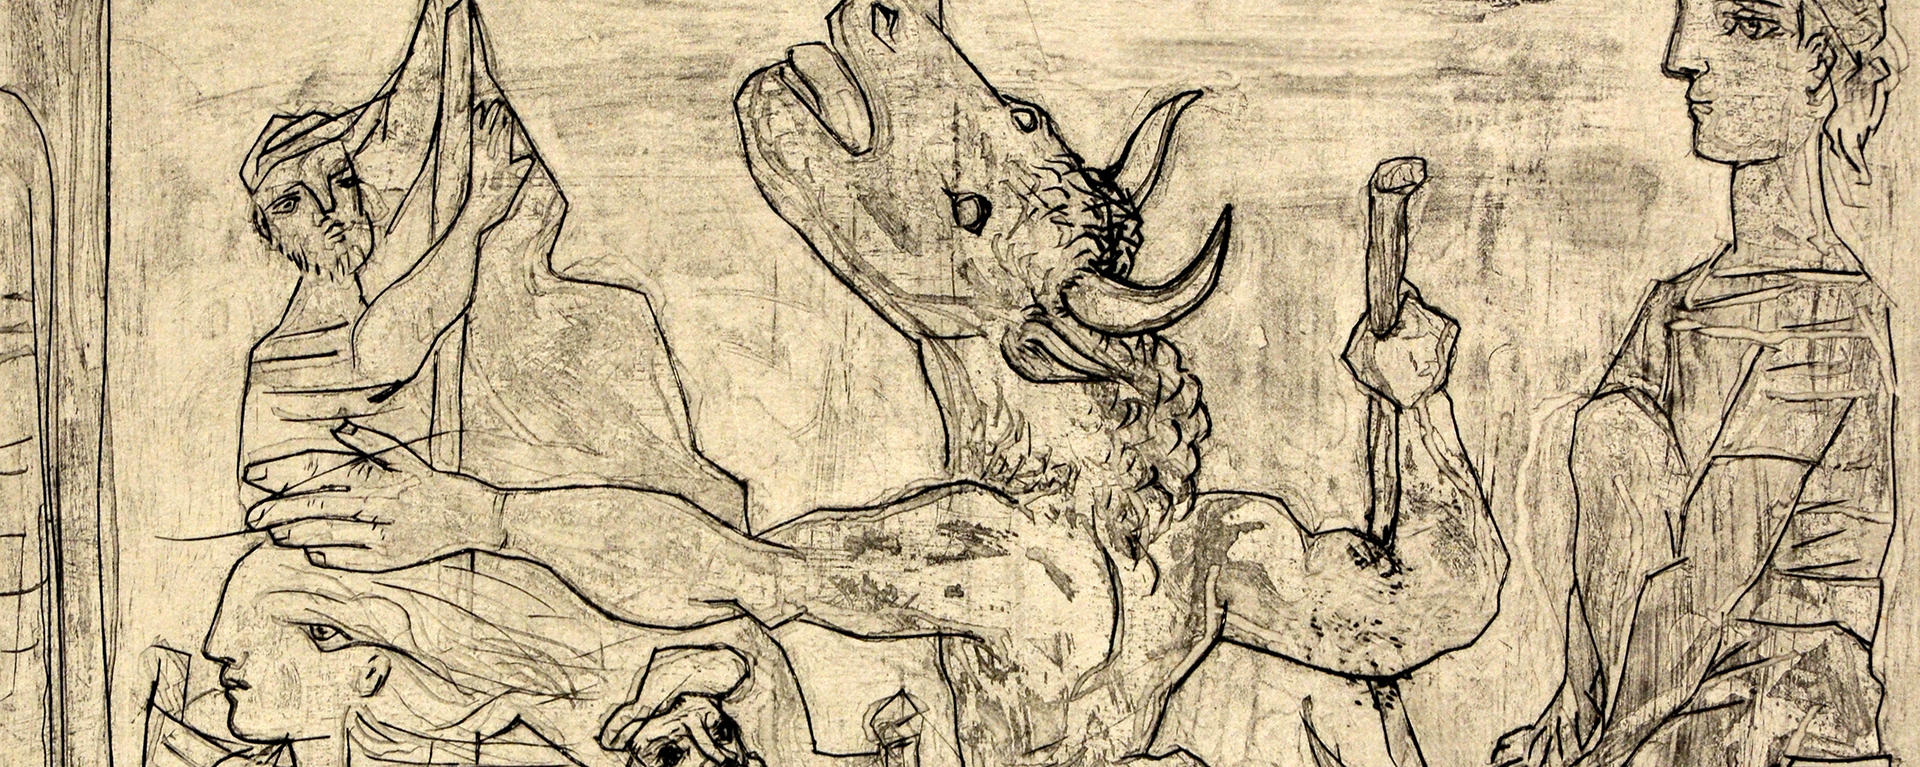 Picasso etching - Blind Minotaur Led by a Little Girl